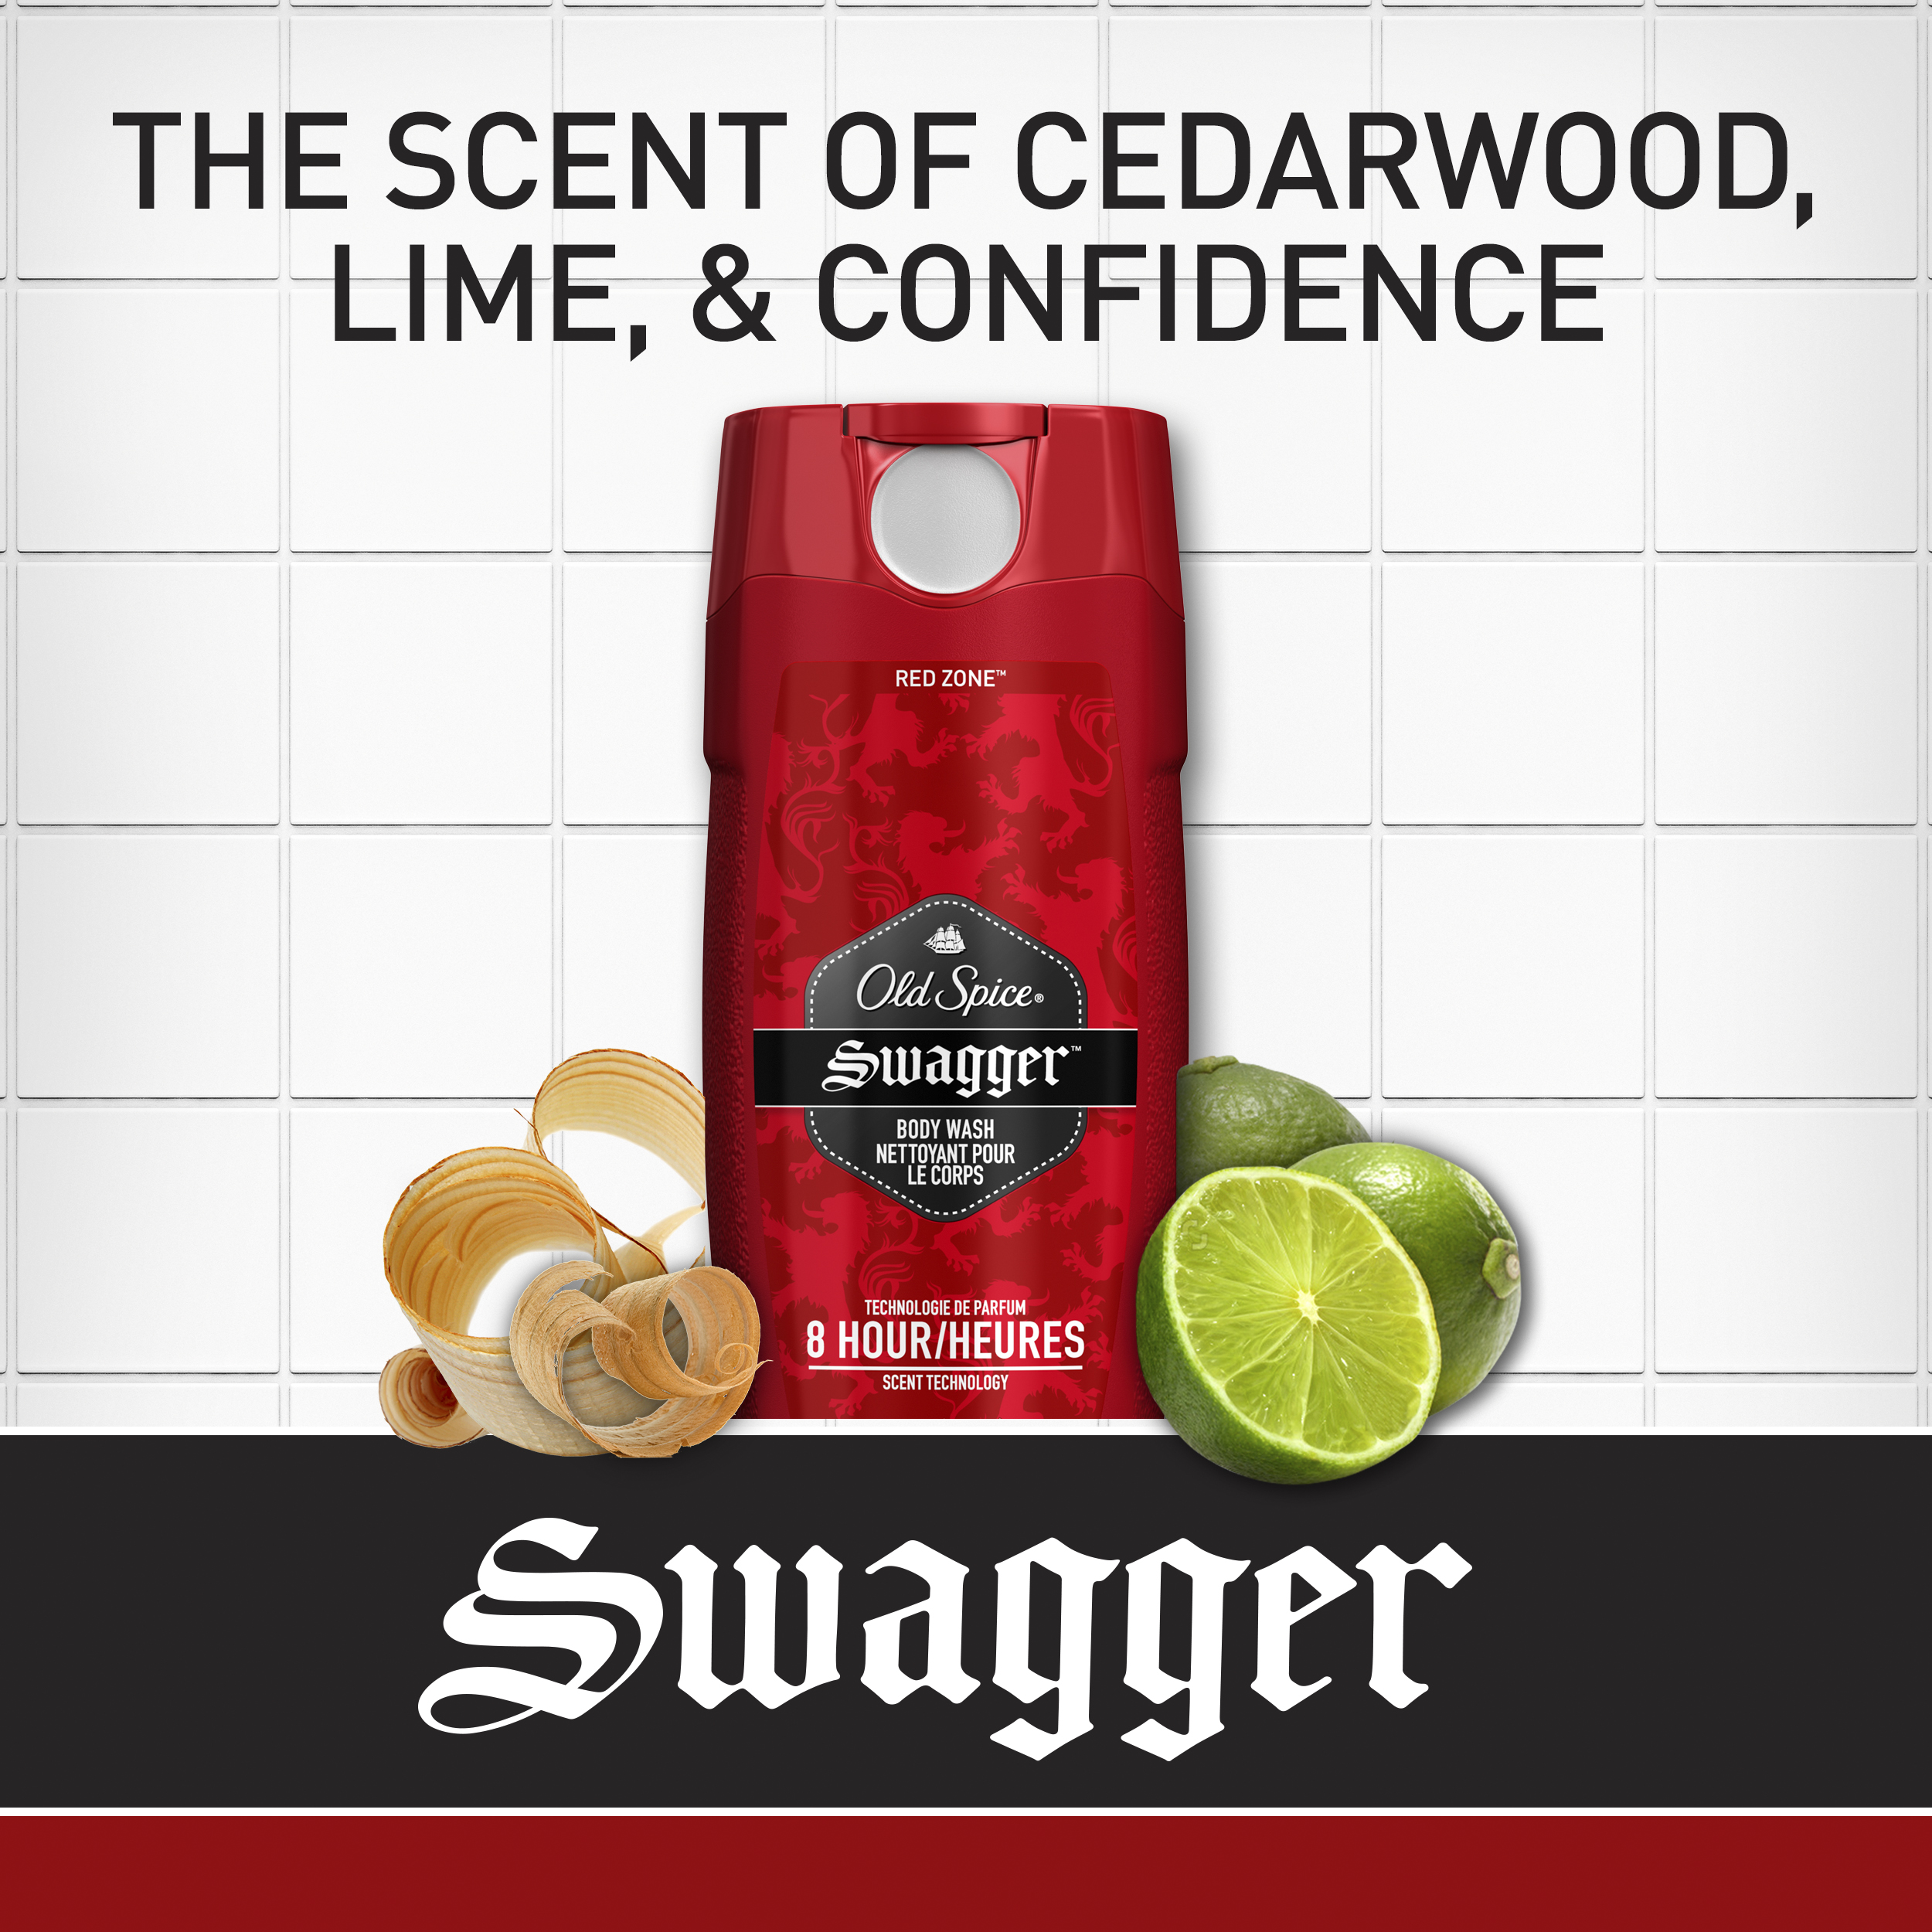 Old Spice Red Zone Swagger Body Wash 16 oz Pack of 2